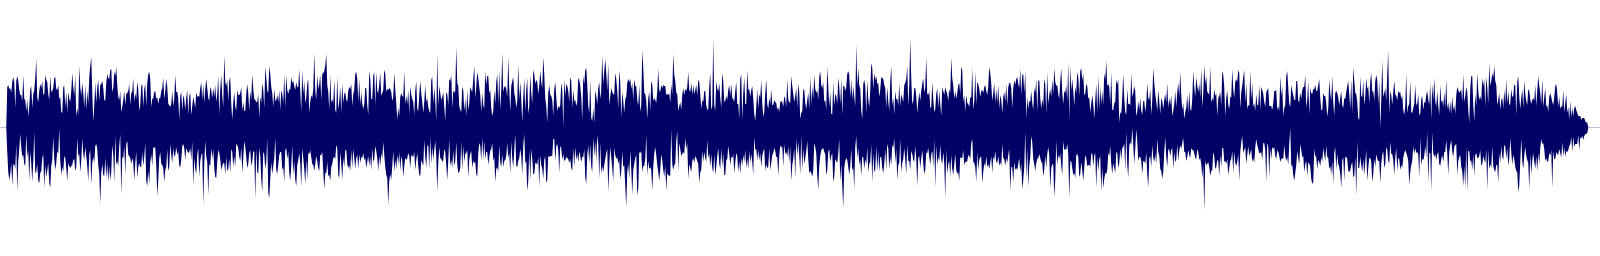 waveform of track #112061